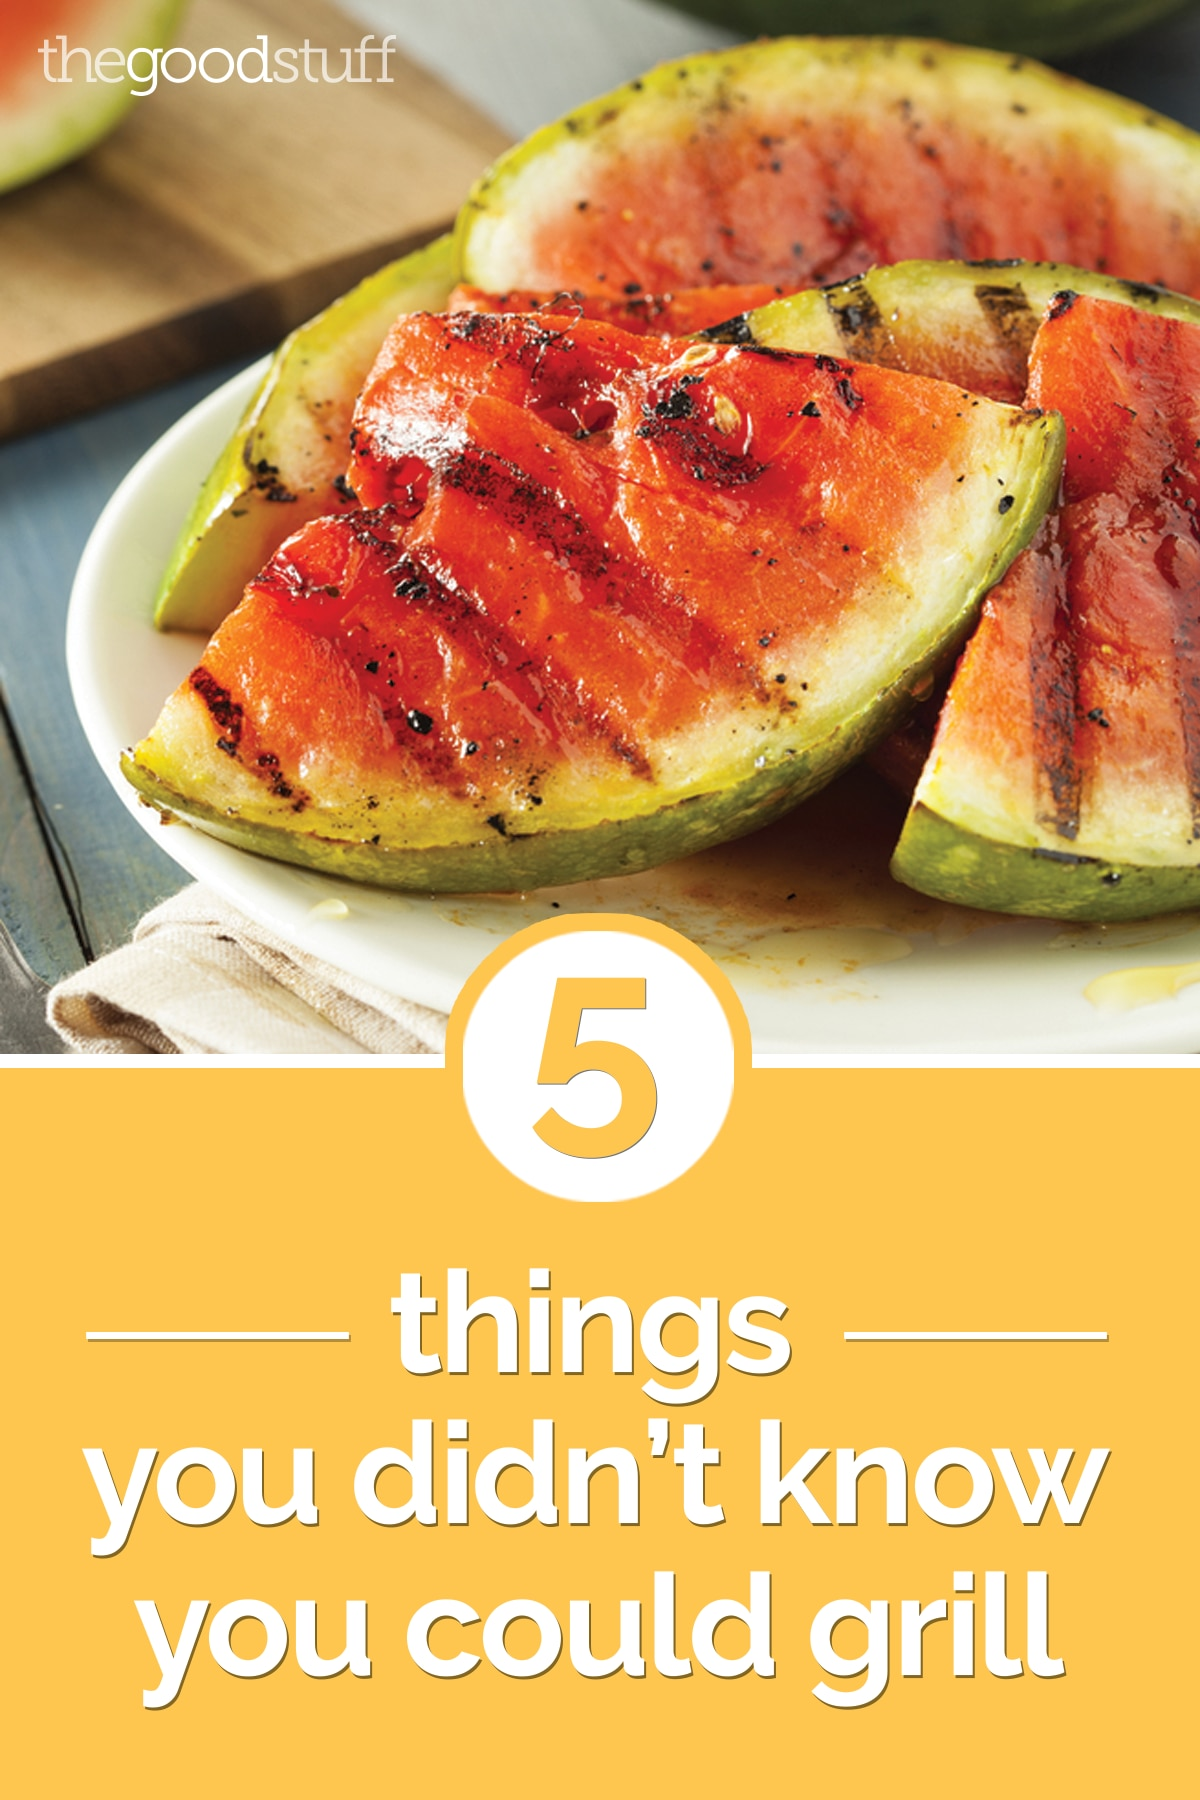 5 Things You Didn't Know You Could Grill | thegoodstuff